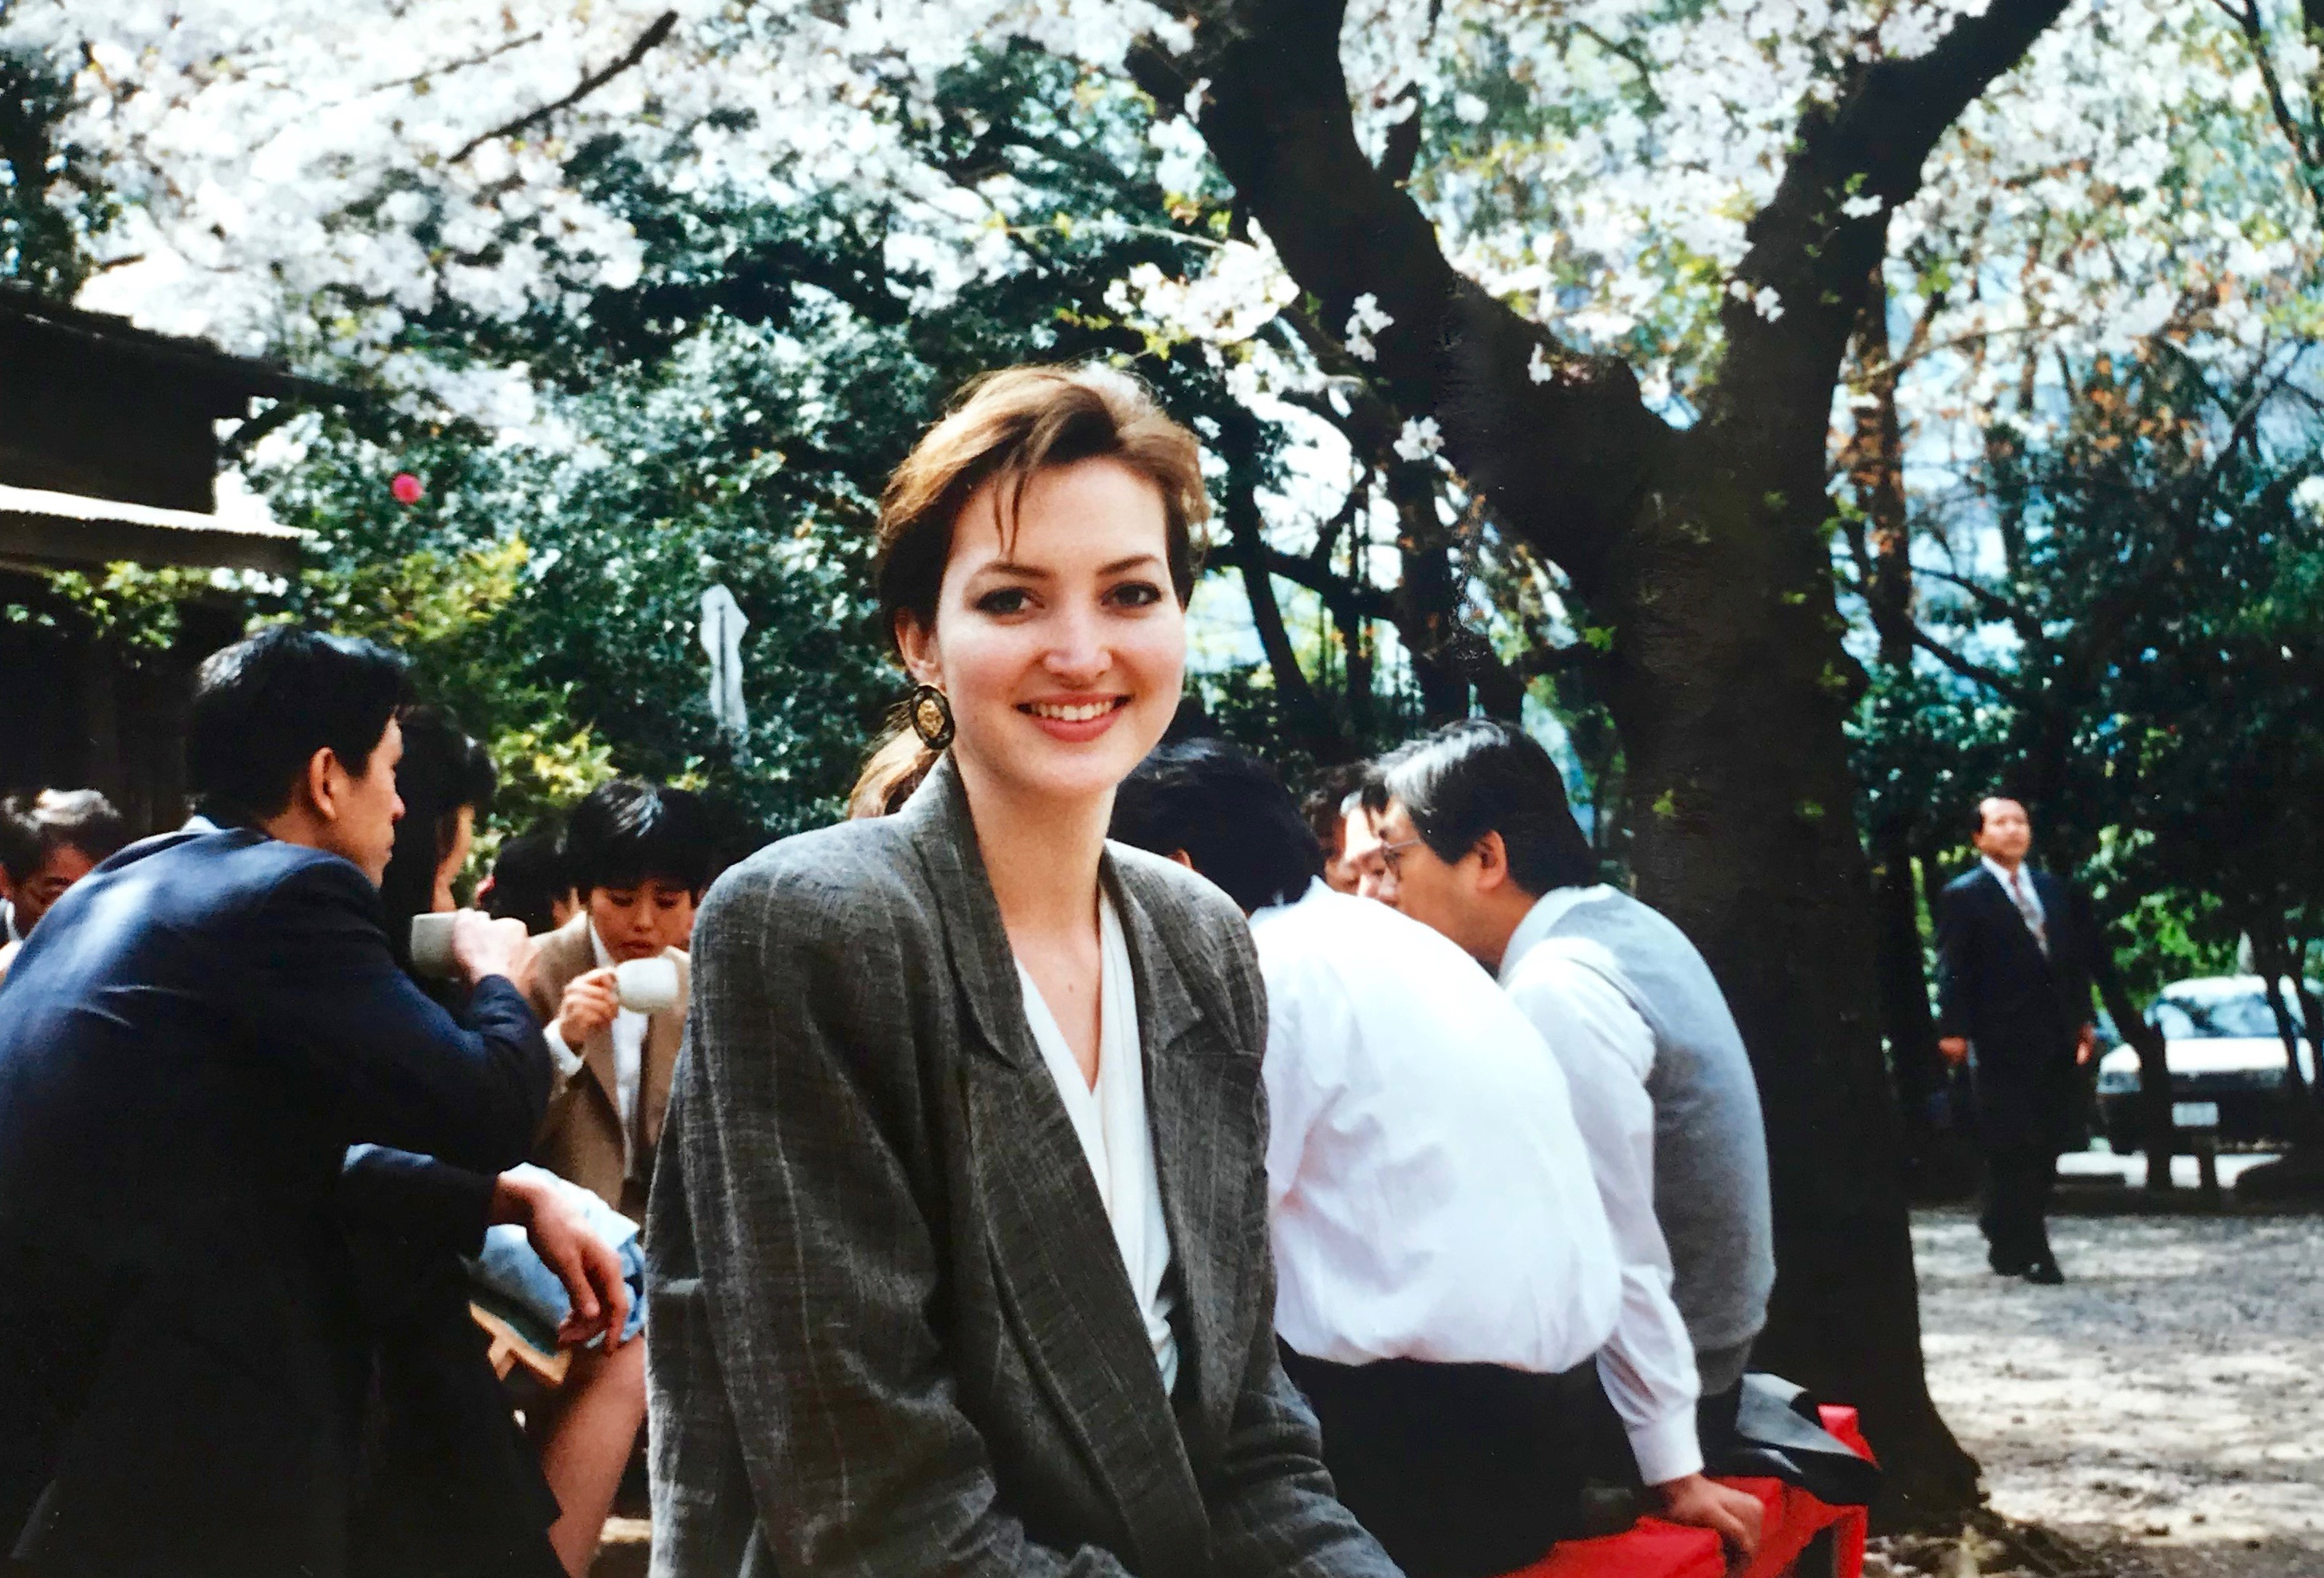 Lunch under the sakura trees, photo taken by a coworker circa 1994